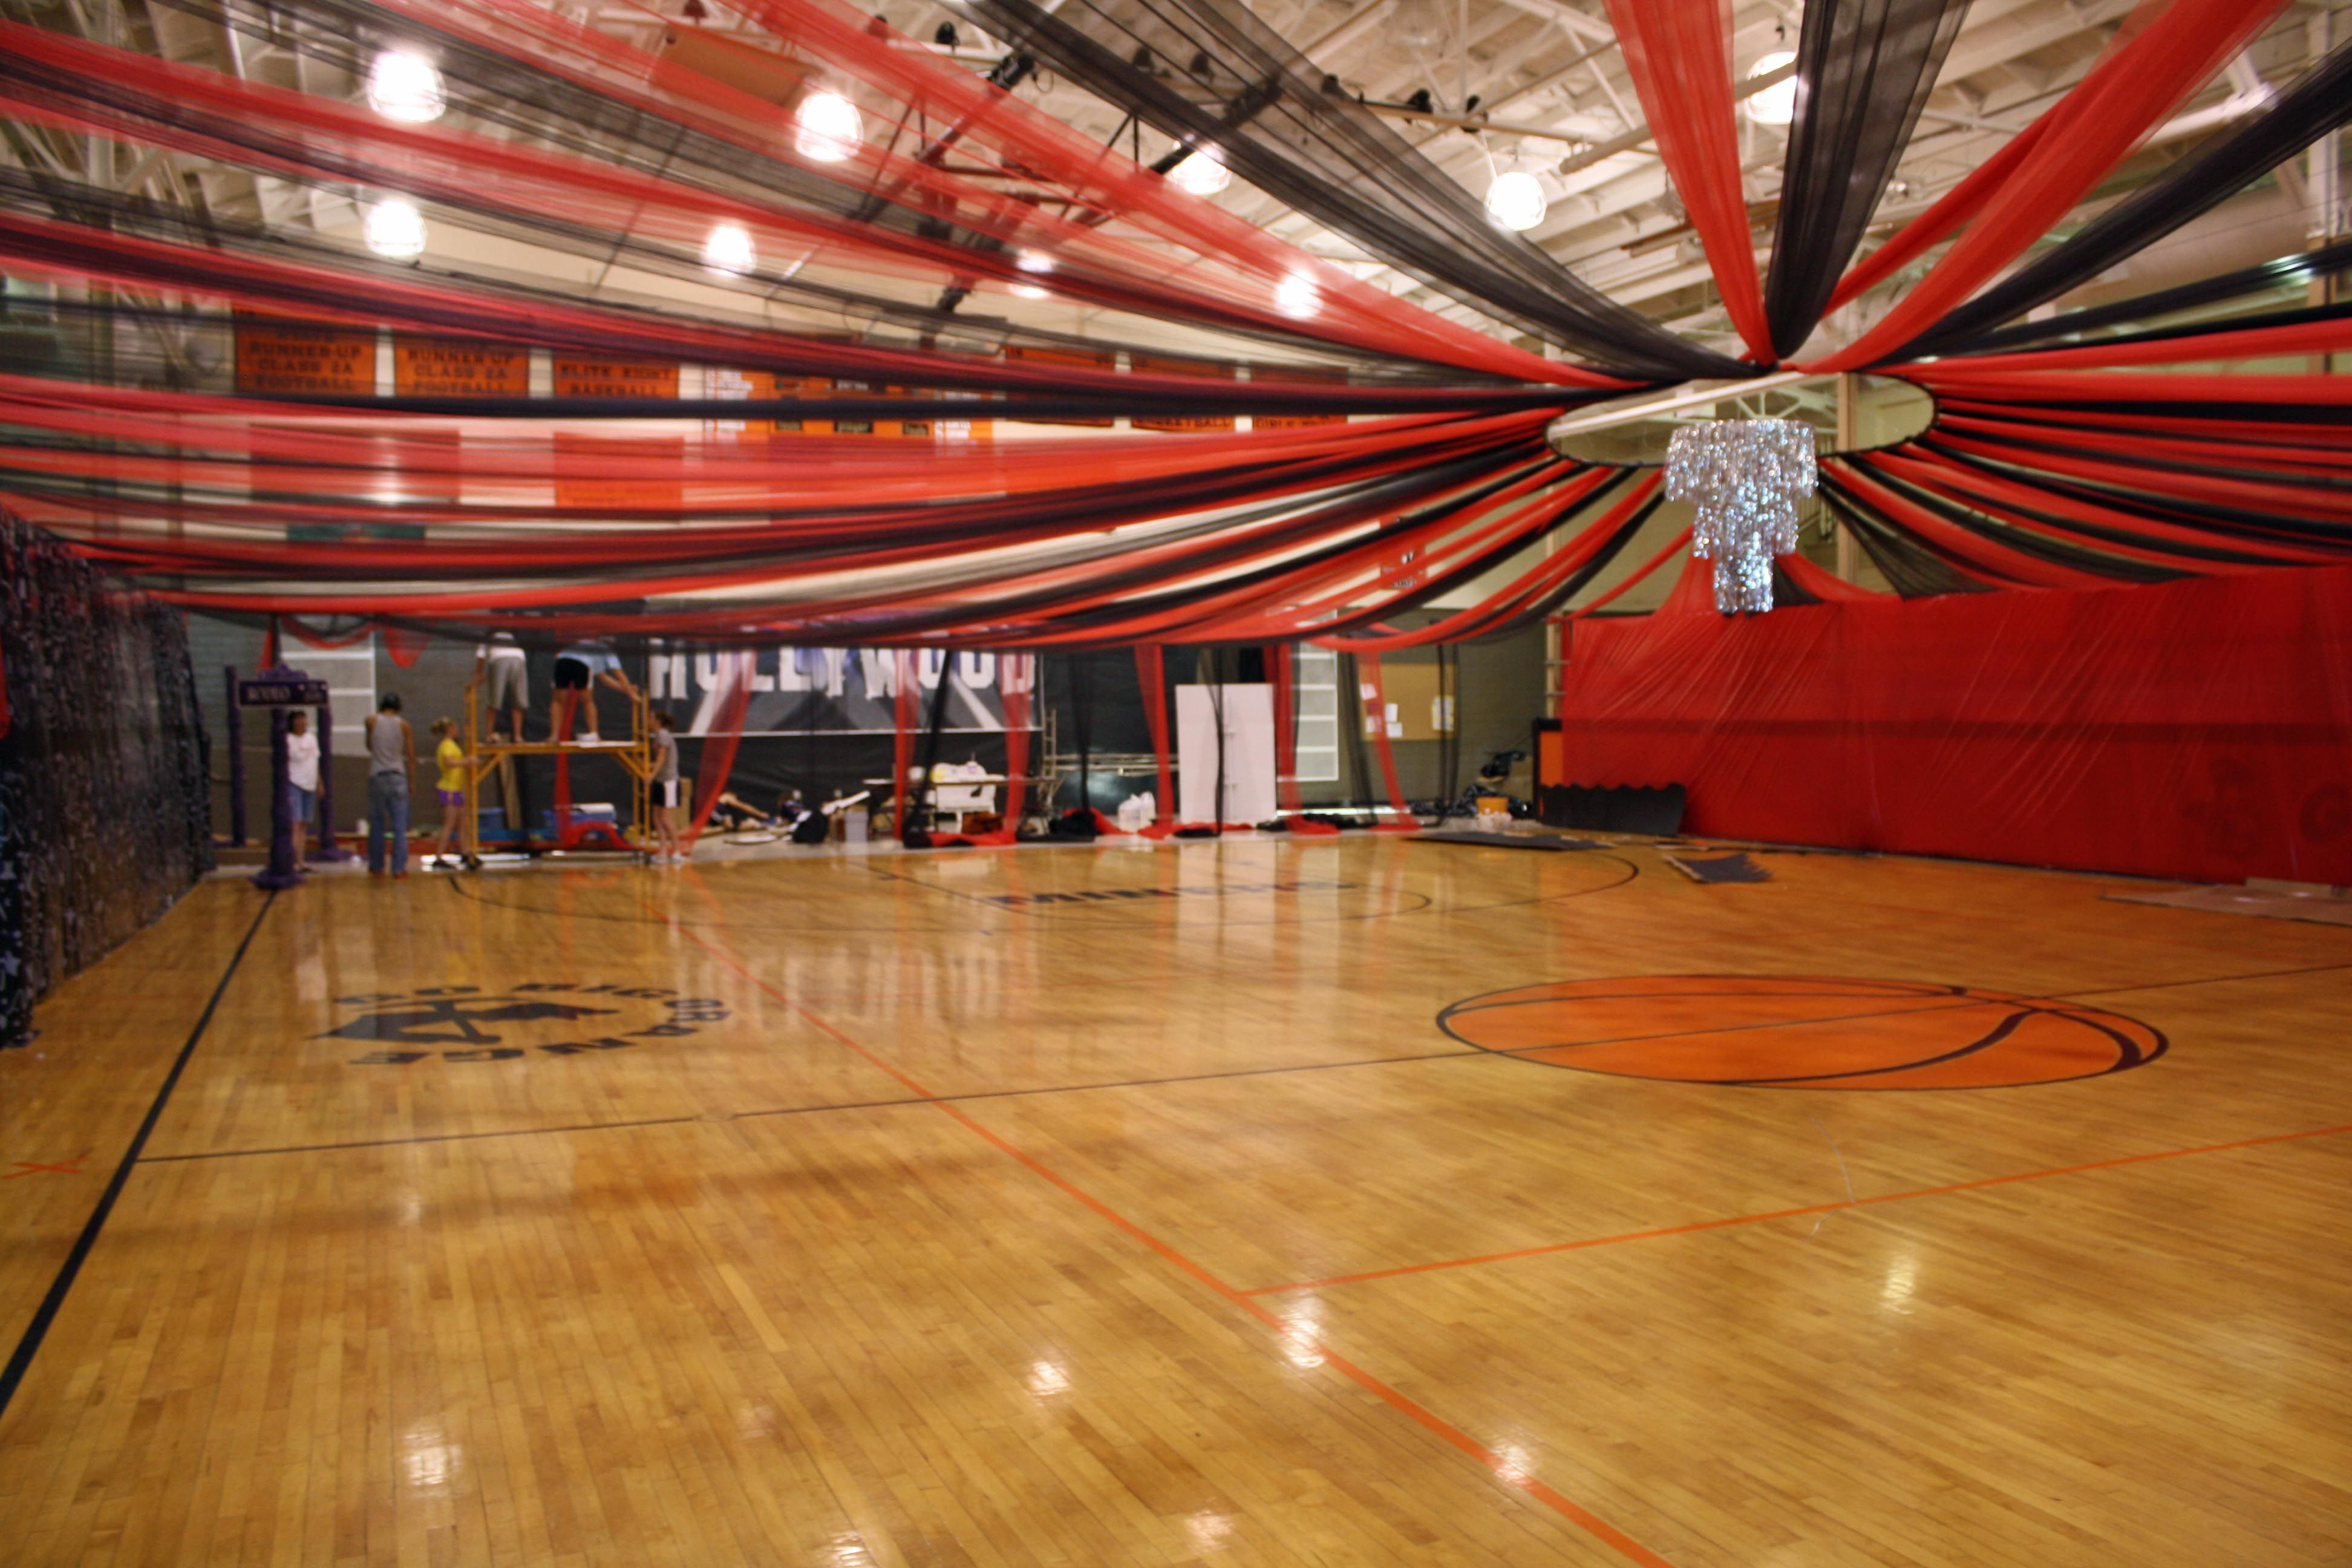 Decorating A Gym For Prom Google Search Prom Ideas